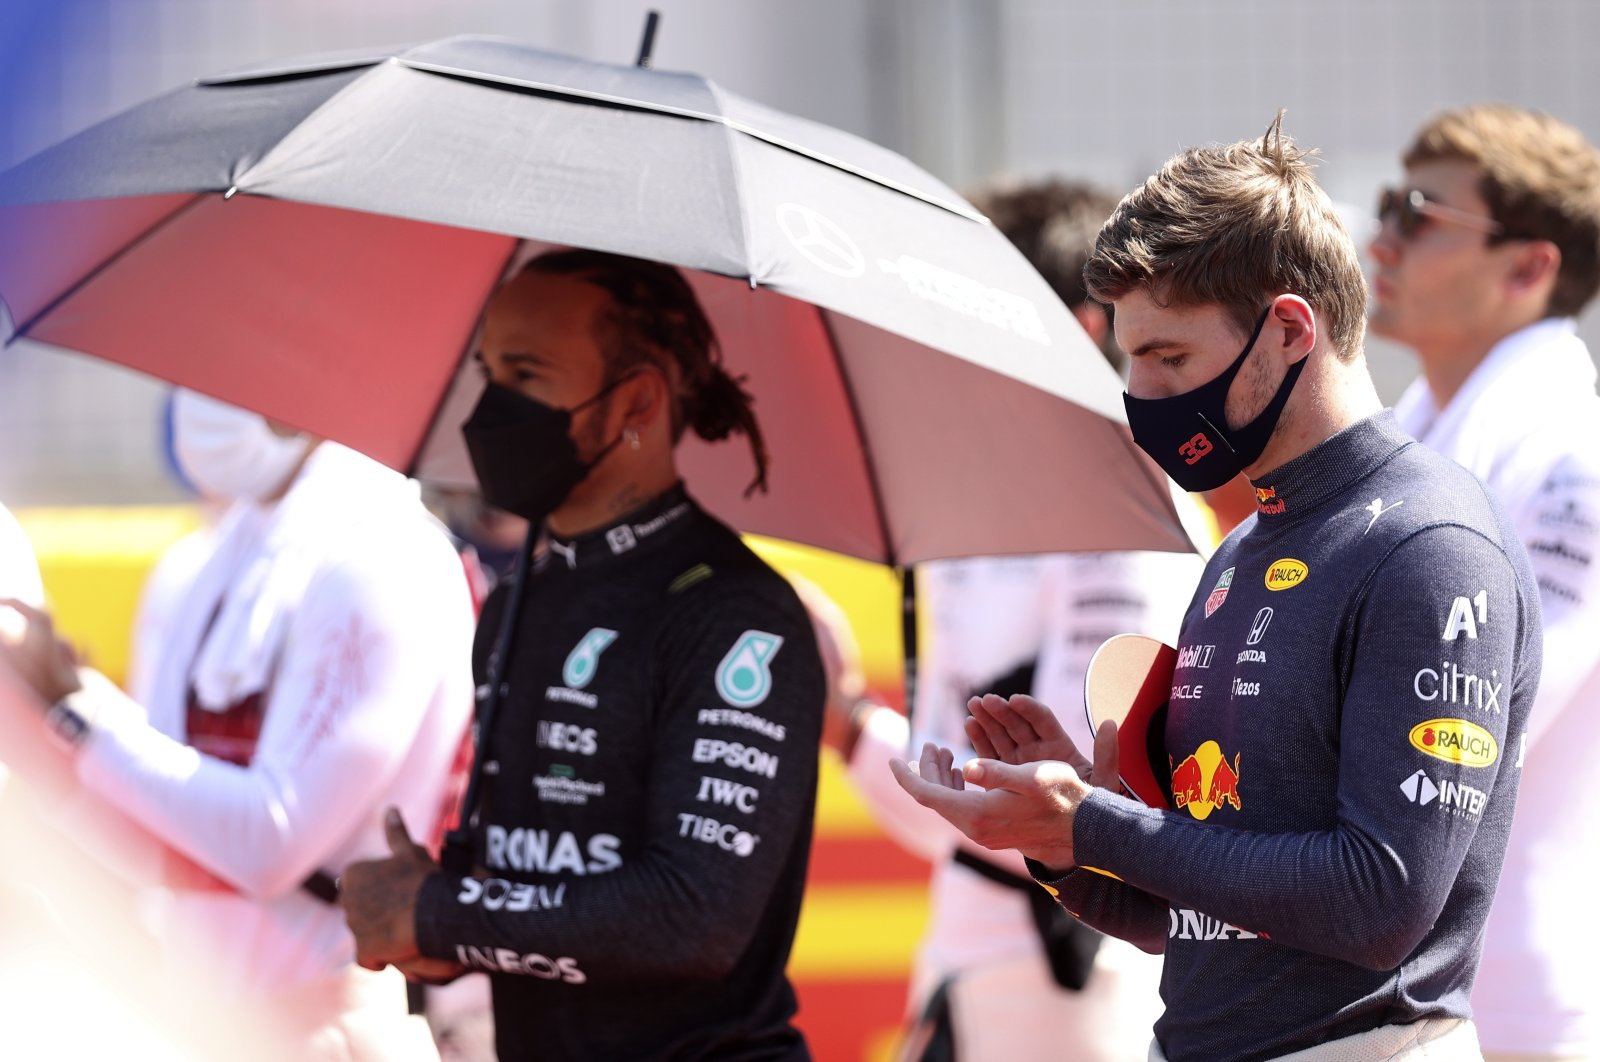 Red Bull driver Max Verstappen of the Netherlands and Mercedes driver Lewis Hamilton of Britain (L) stand on the grid before the start of the British Formula One Grand Prix, at the Silverstone circuit, in Silverstone, England, July 18, 2021. (AP Photo)